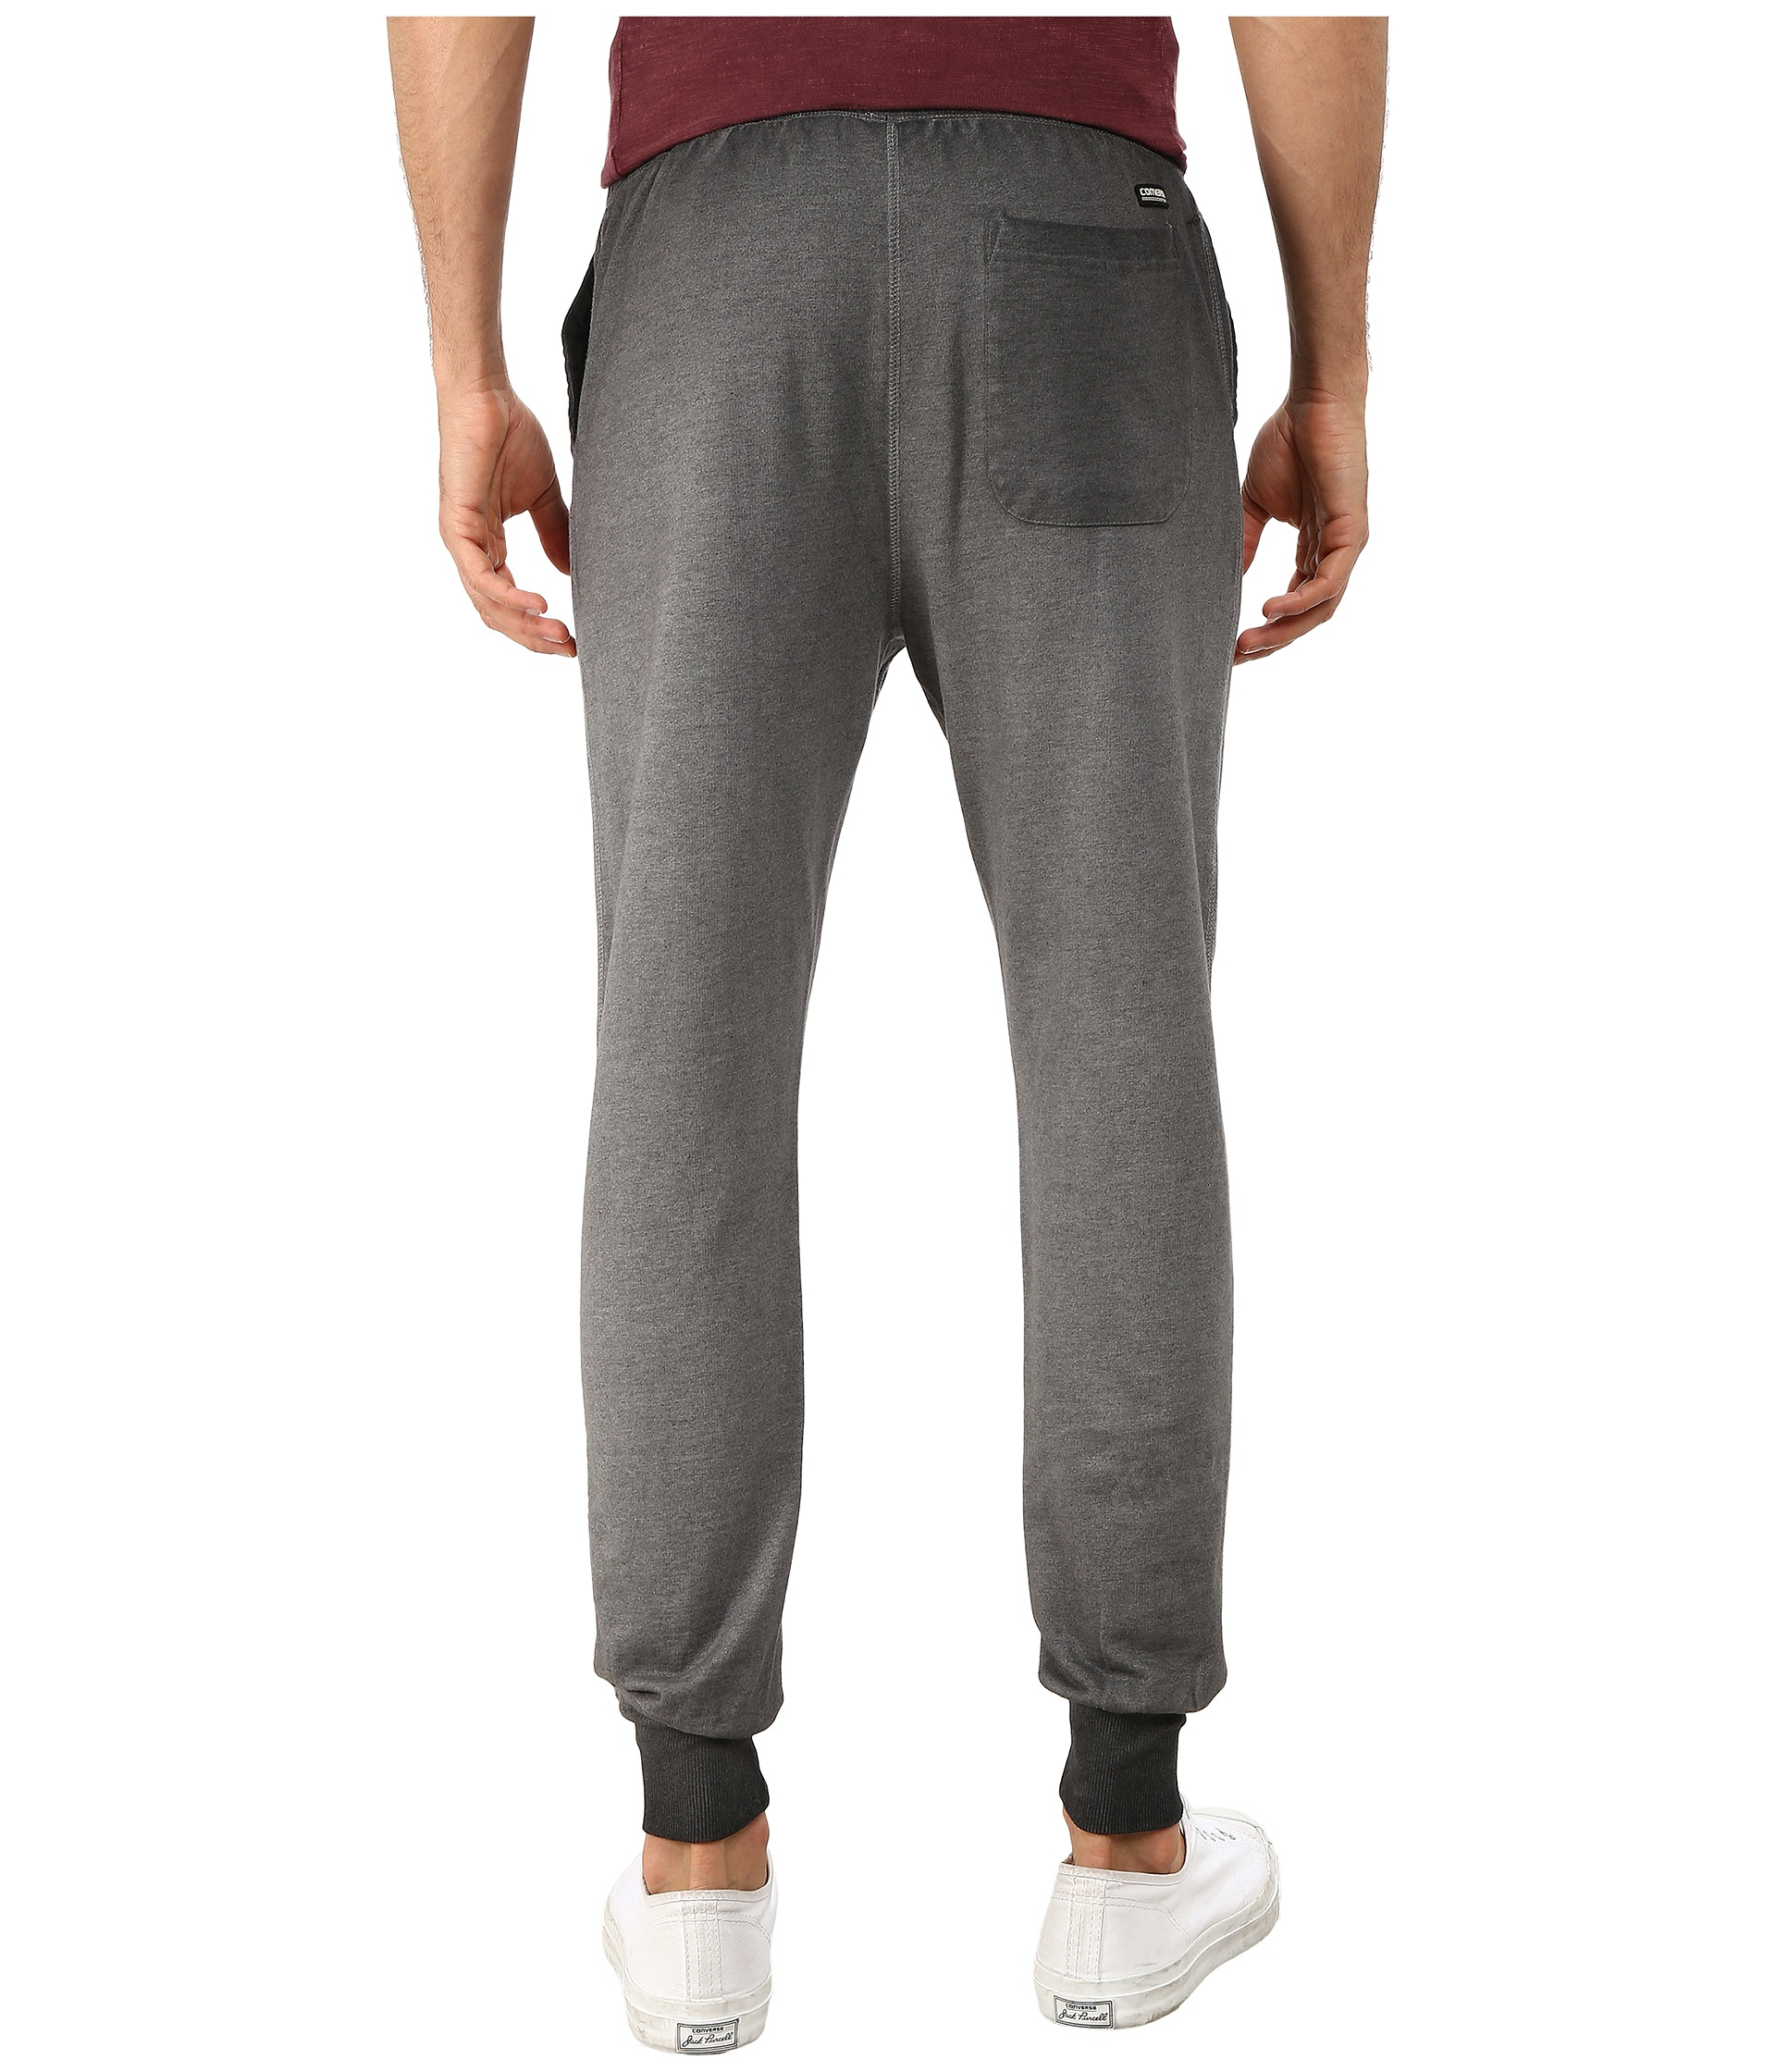 05b4056930f1 Lyst - Converse Black Wash French Terry Pants in Gray for Men